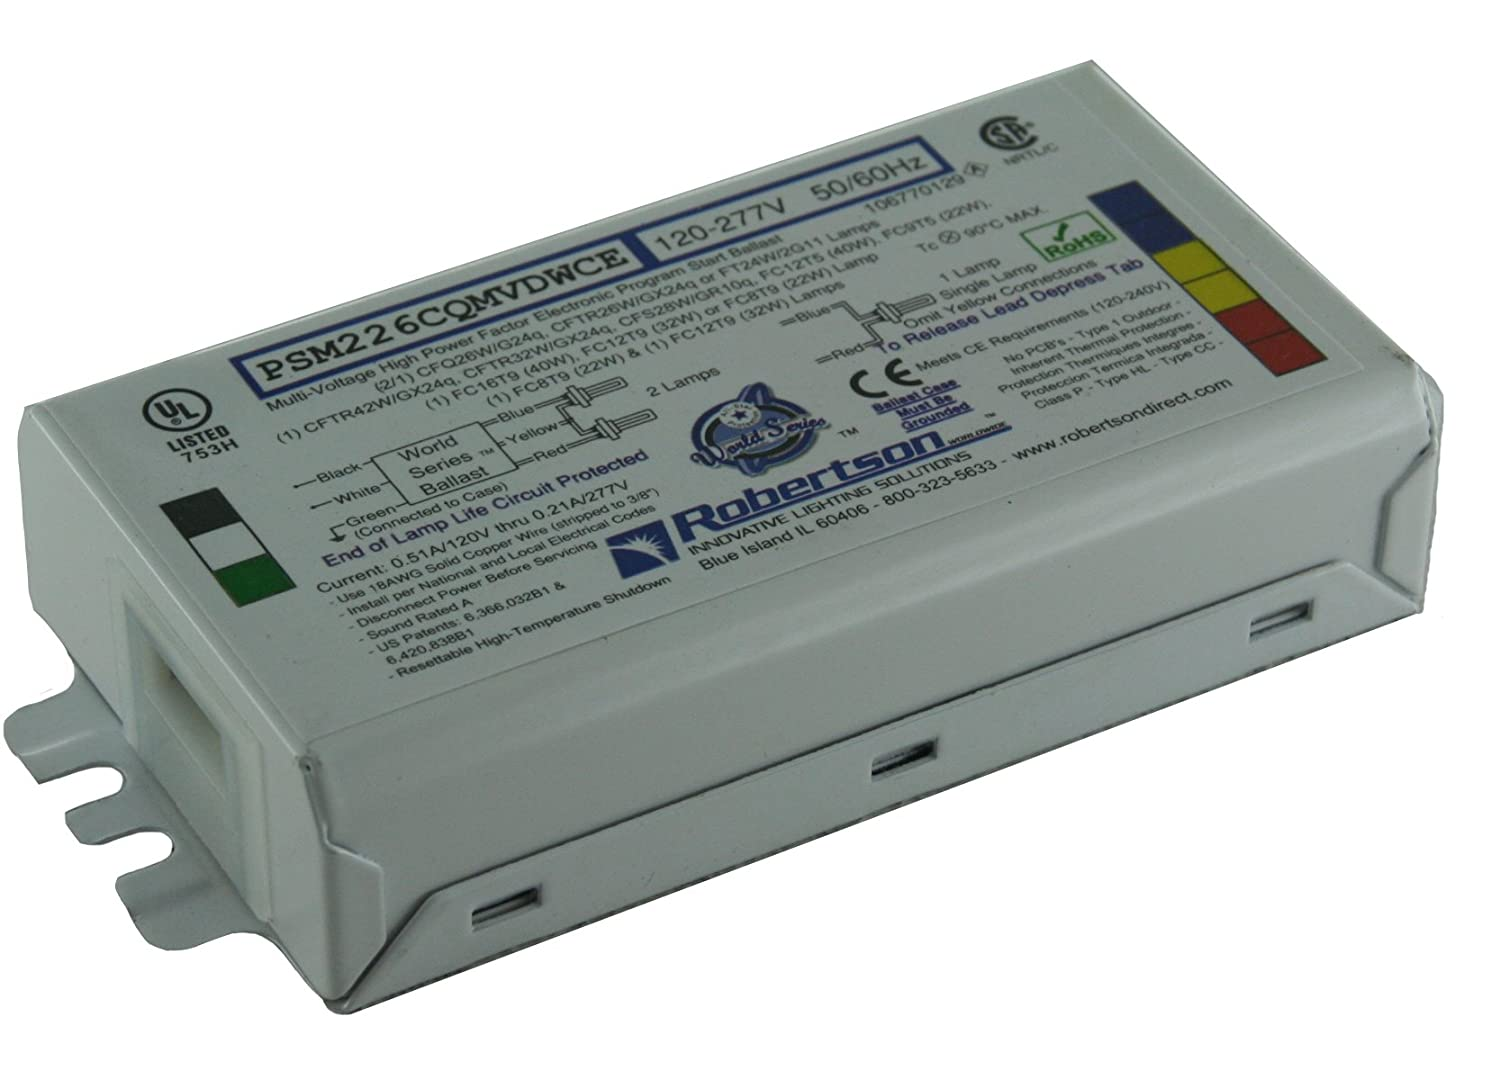 Amazon.com ROBERTSON 3P20145 Inidual Fluorescent eBallast 2 CFQ26W/G24q CFL L& Program Start 120-277Vac 50-60Hz Normal Ballast Factor HPF ...  sc 1 st  Amazon.com : robertson innovative lighting solutions - azcodes.com